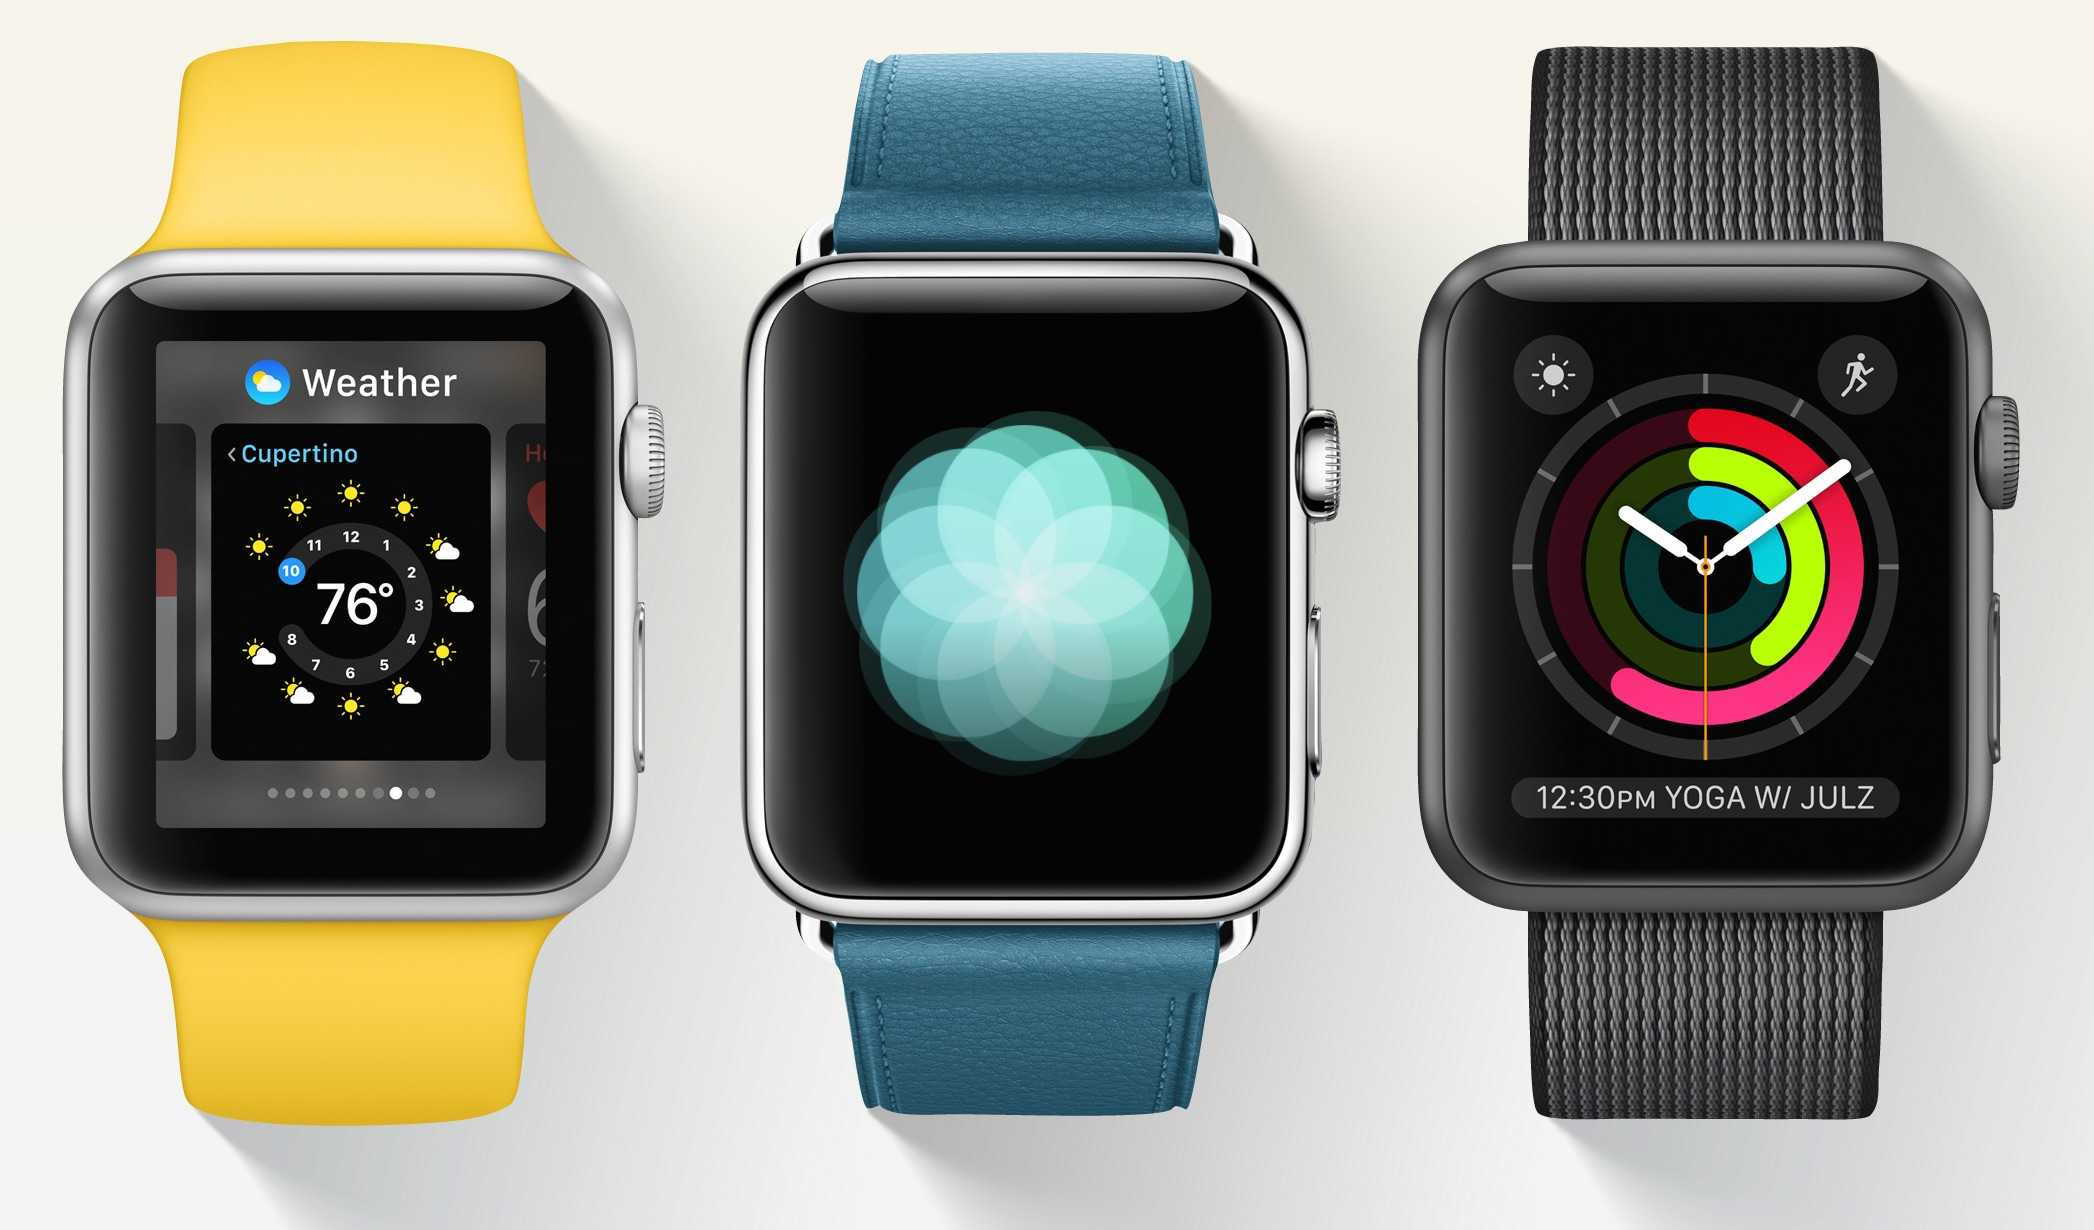 With watchOS 3, Apple is promising pretty new features -- and an end to that depressing lag.